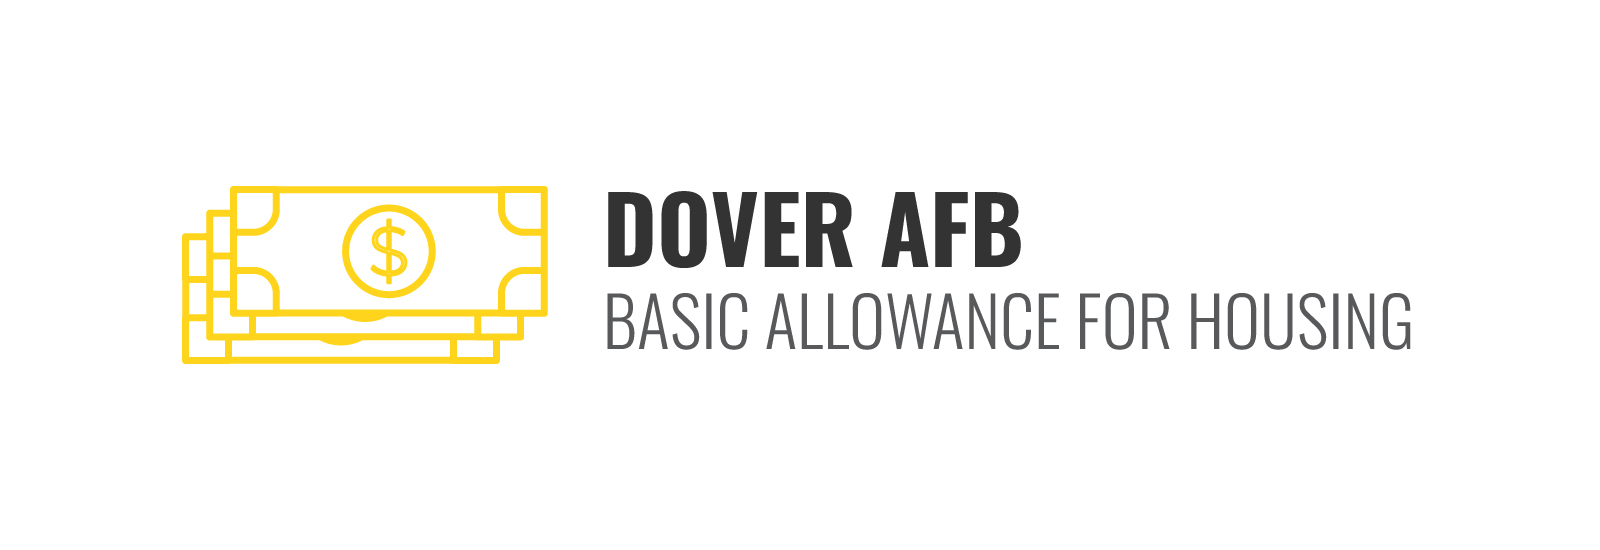 BAH Dover AFB